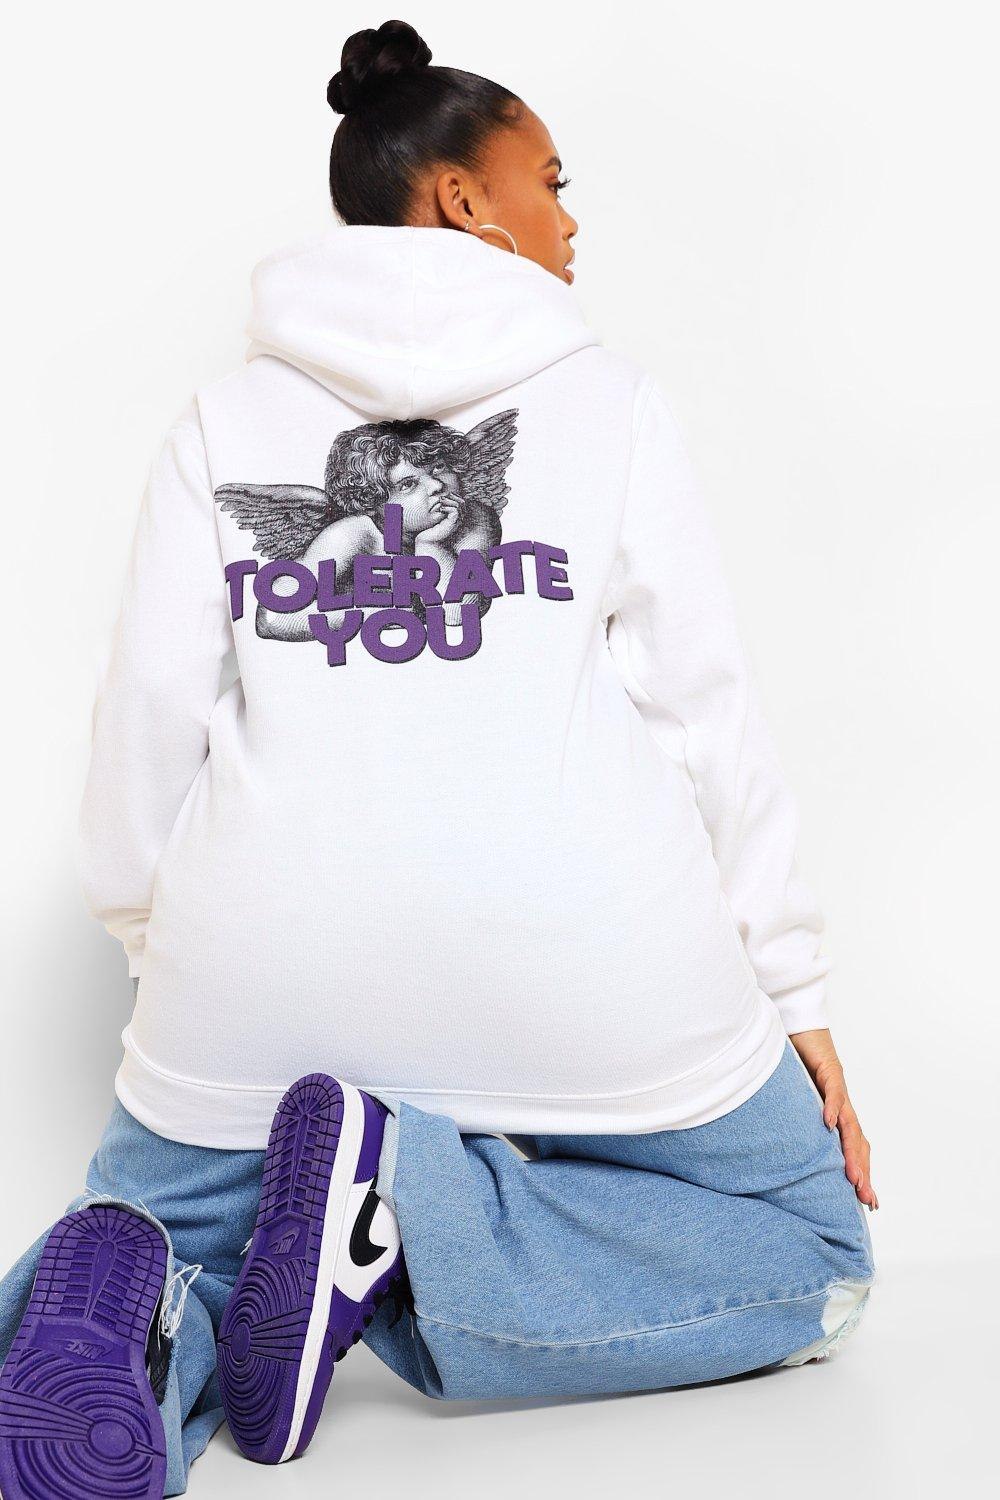 Plus I Tolerate You Slogan Back Print Hoody 12